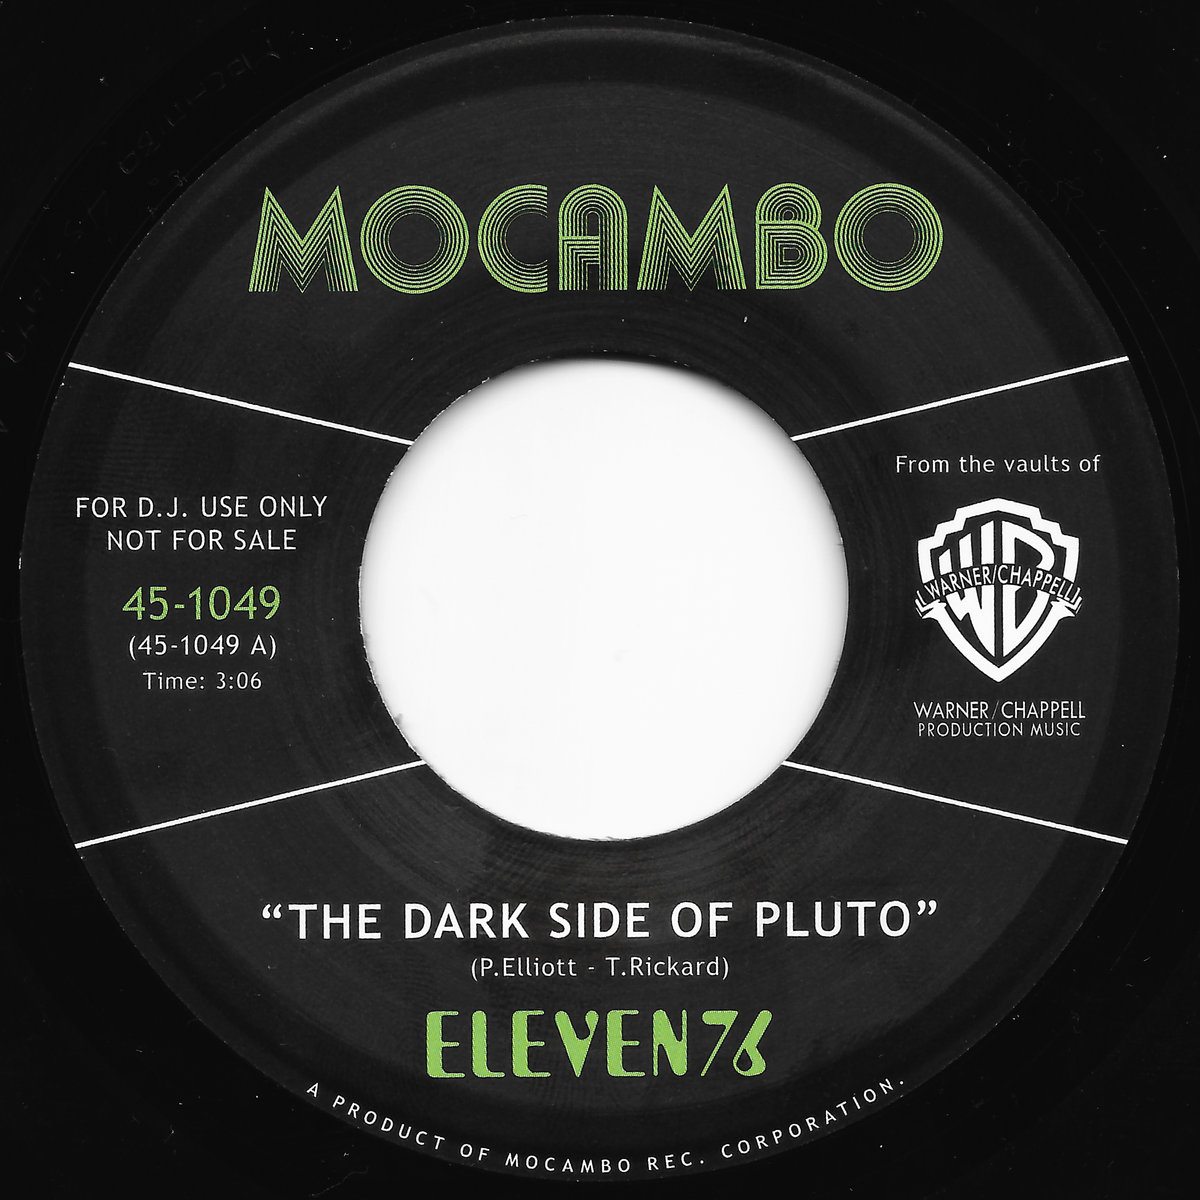 MOCAMBO RECORDS | Home of today's heaviest Funk 45s